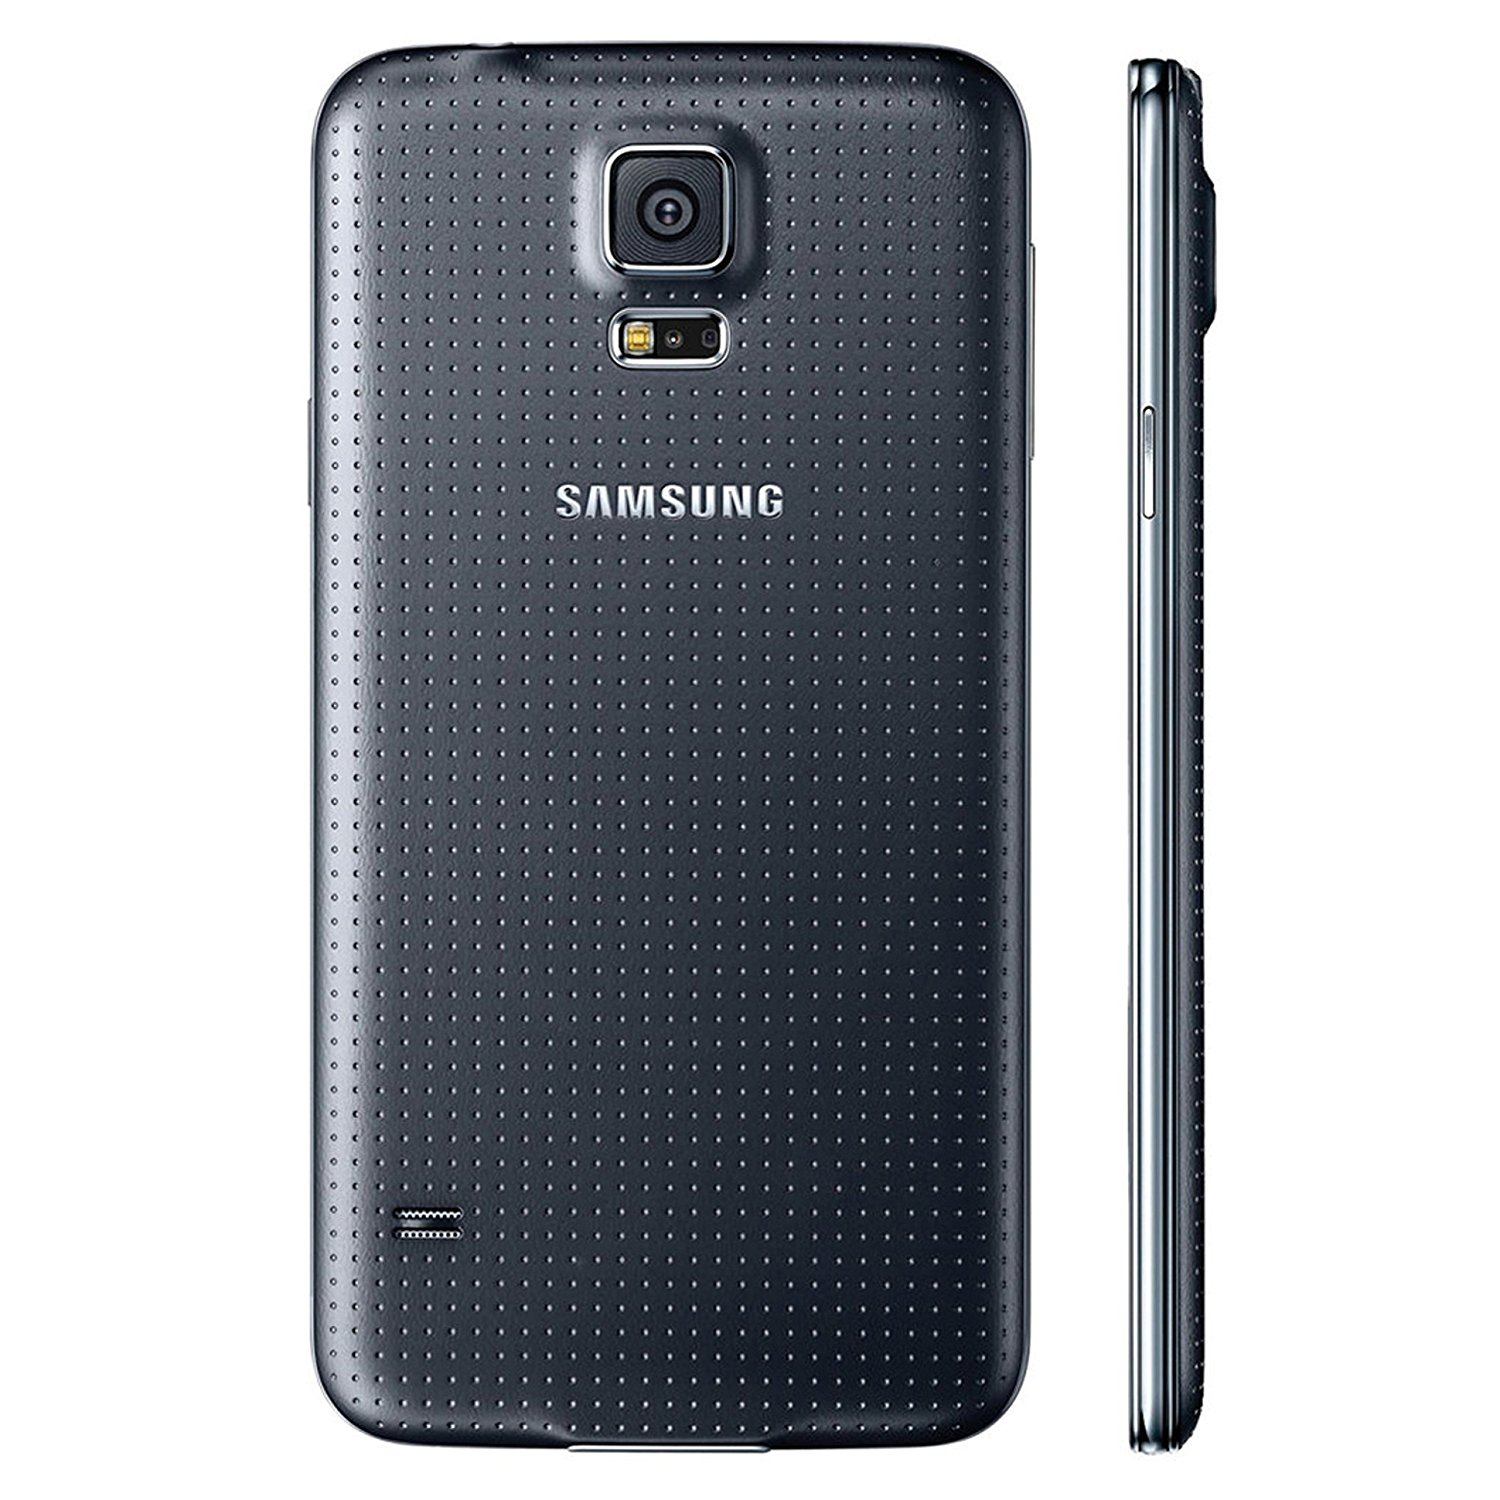 samsung galaxy s5 for sale in jamaica. Black Bedroom Furniture Sets. Home Design Ideas